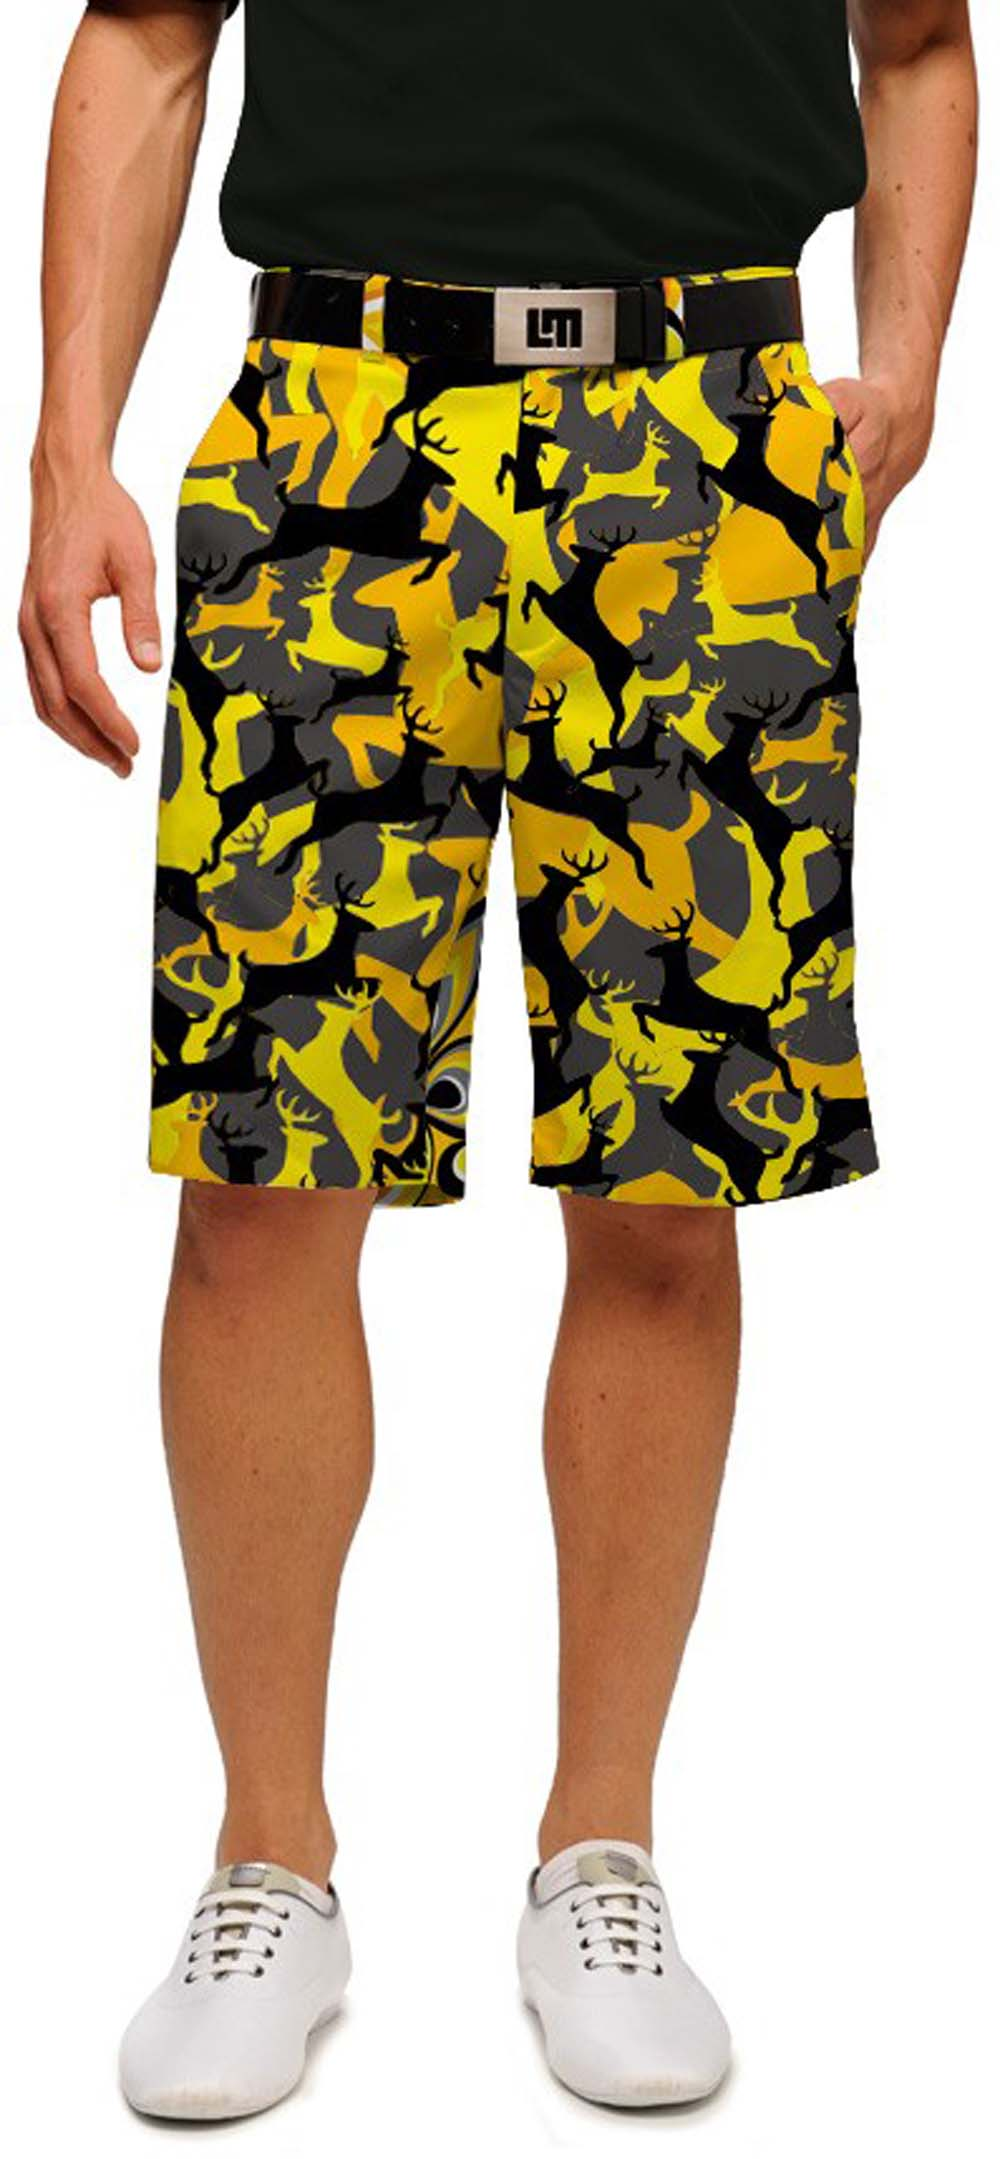 Loudmouth Shorts Loudmouth golf o...